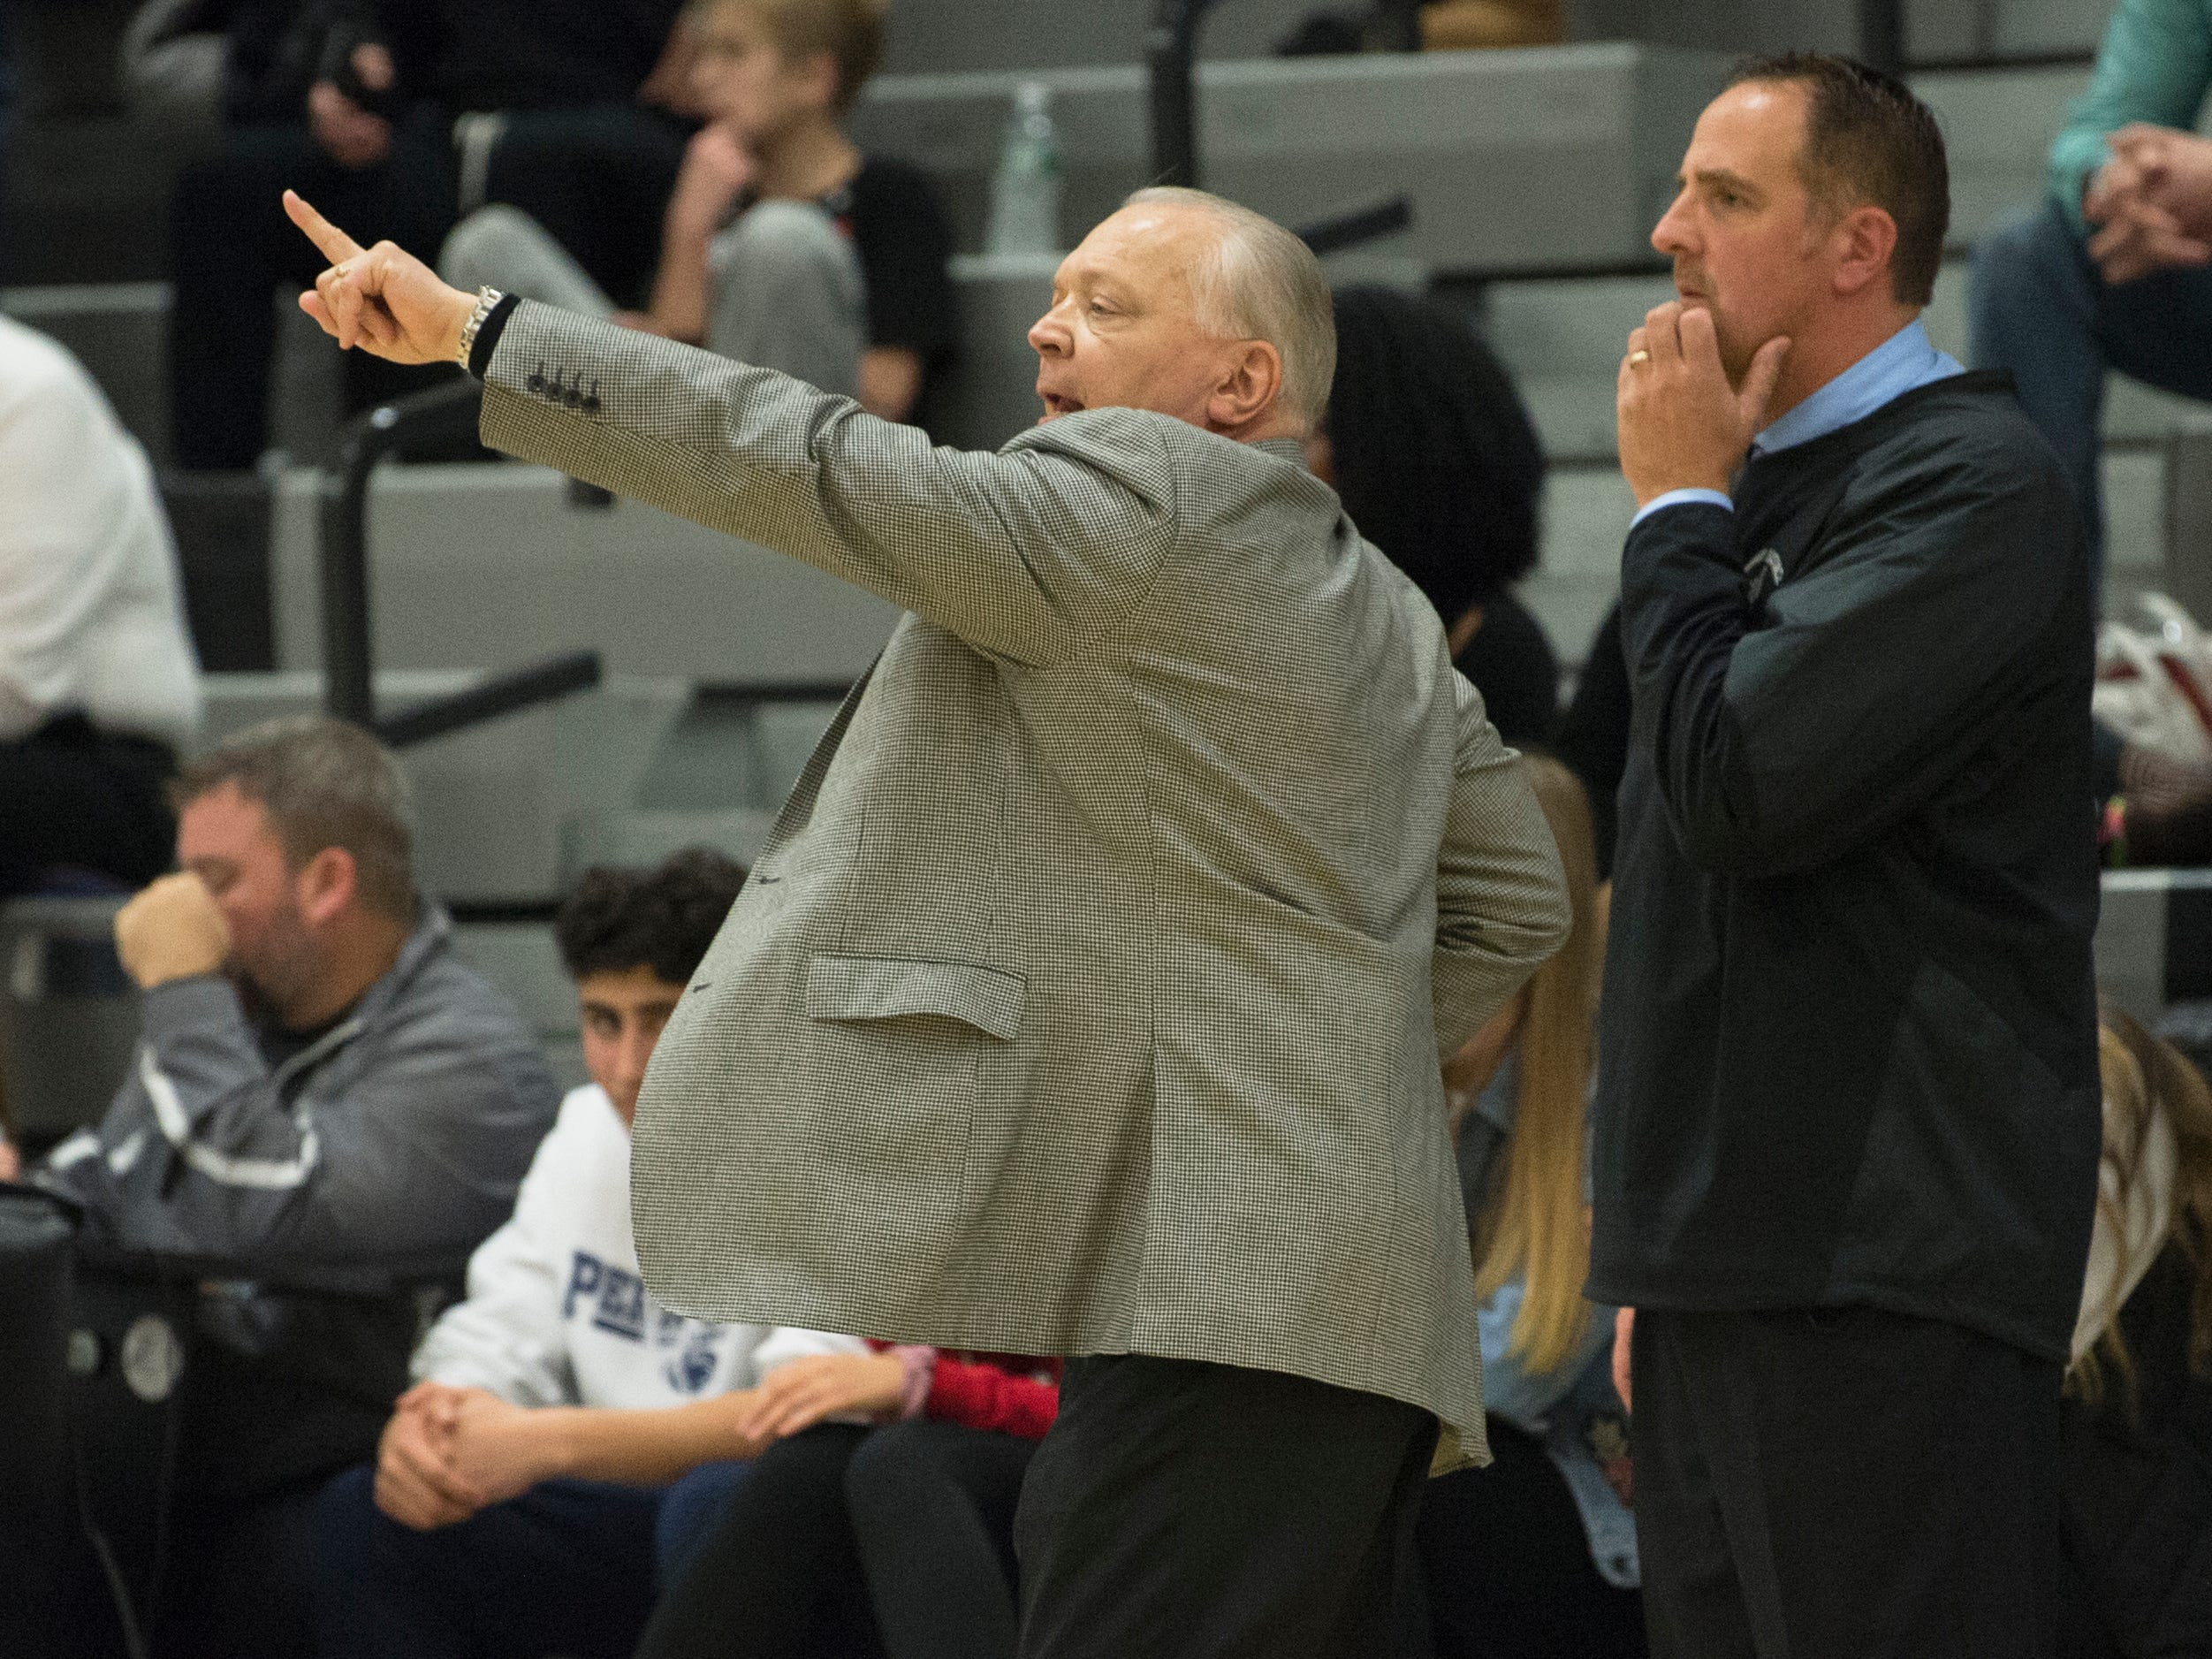 Bishop Eustace boys basketball coach Robert Falconiero instructs his players during the 1st quarter of the boys basketball game between Bishop Eustace and Shawnee played at Bishop Eustace High School in Pennsauken on Friday, December 14, 2018.  Bishop Eustace won, 51-35.